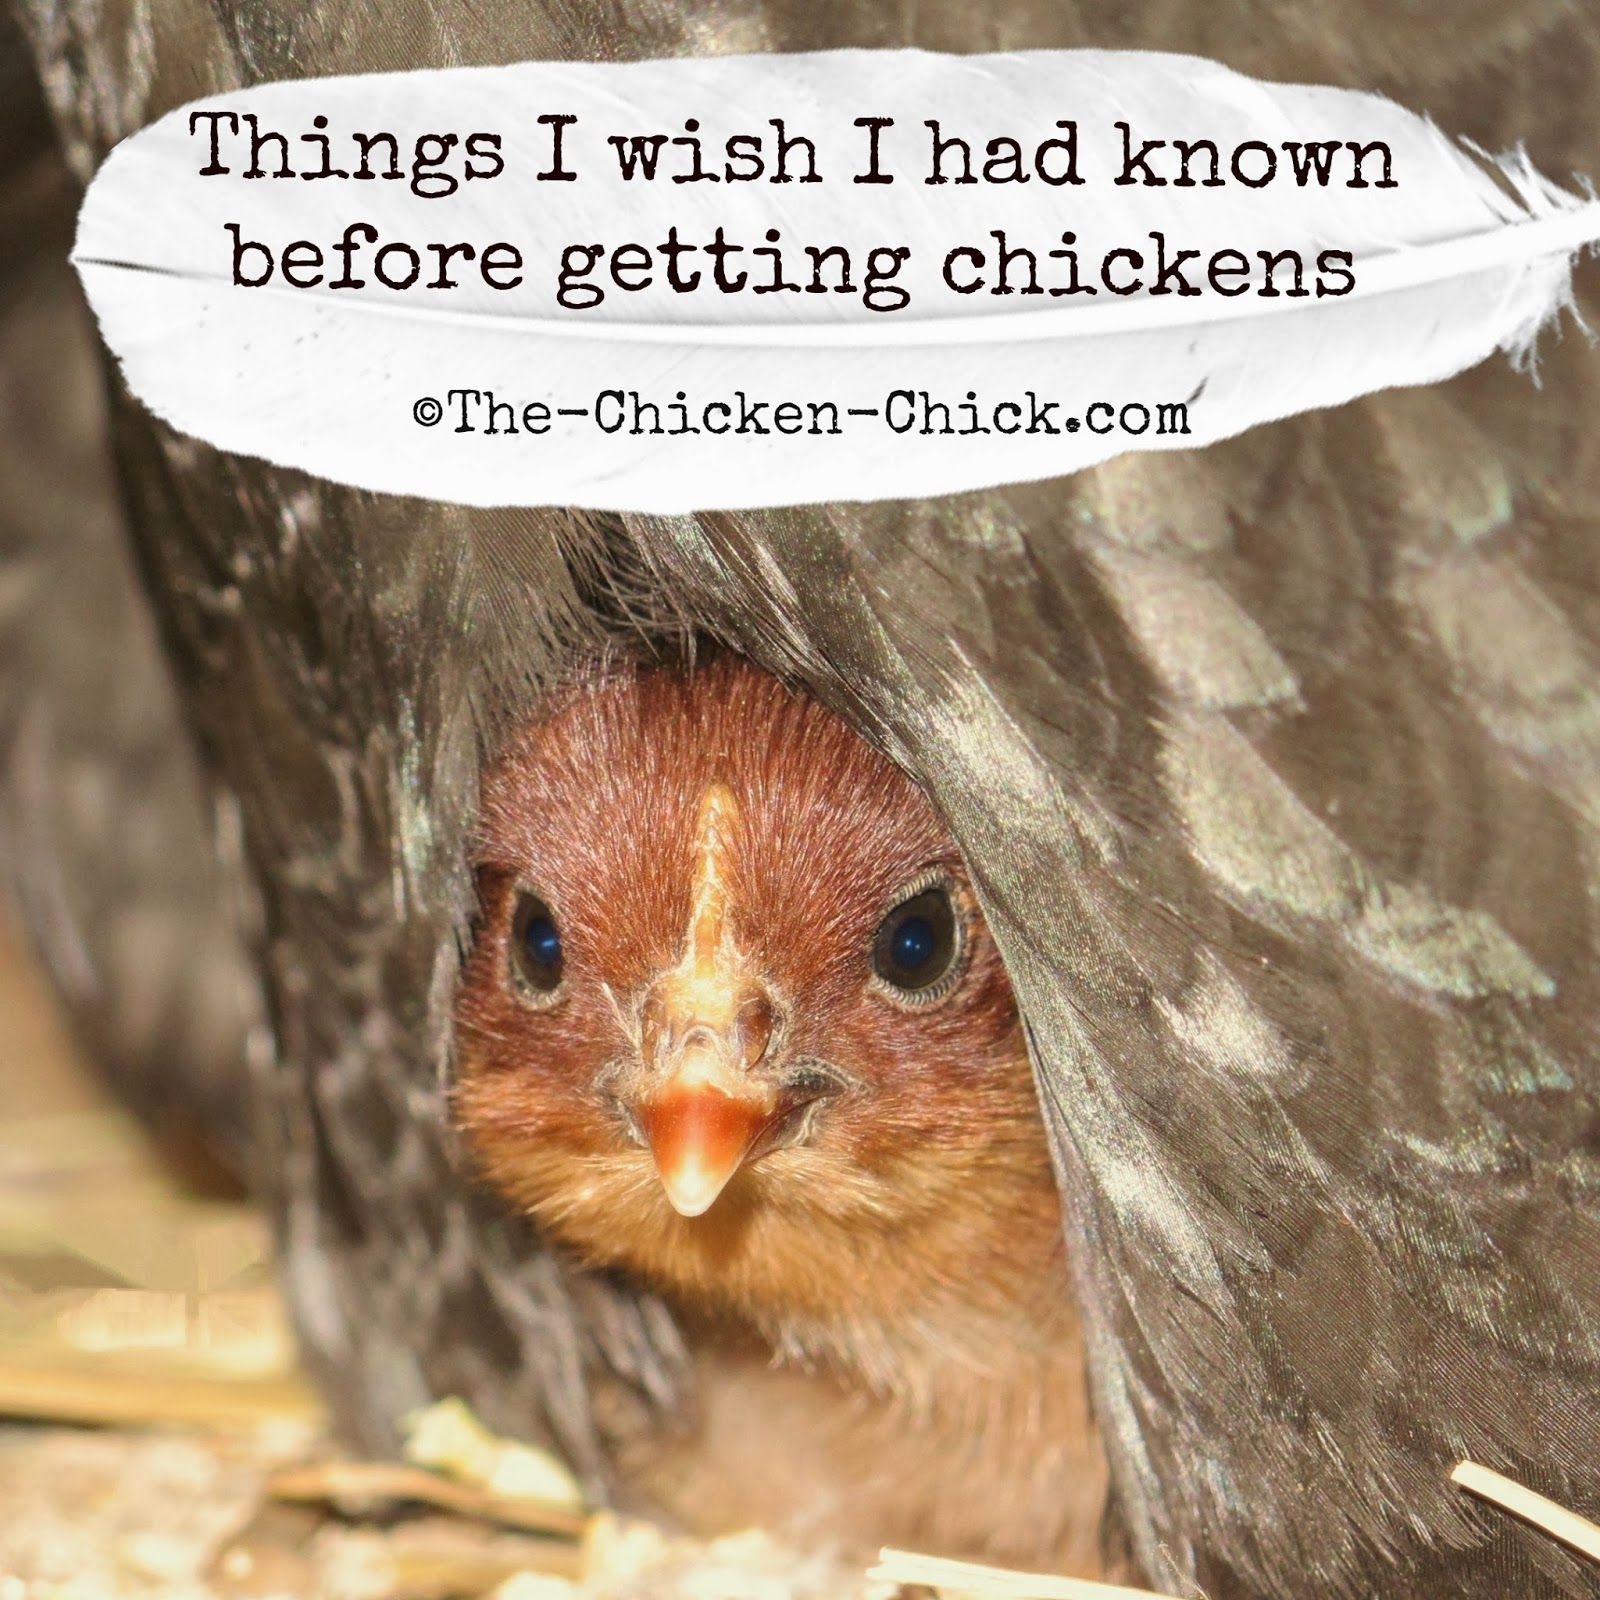 So, You Want To Keep Backyard Chickens? Some Lessons Are Painful And  Expensive To Learn By Experience, So In The Hope Of Sparing Some Growing  Pains For ...